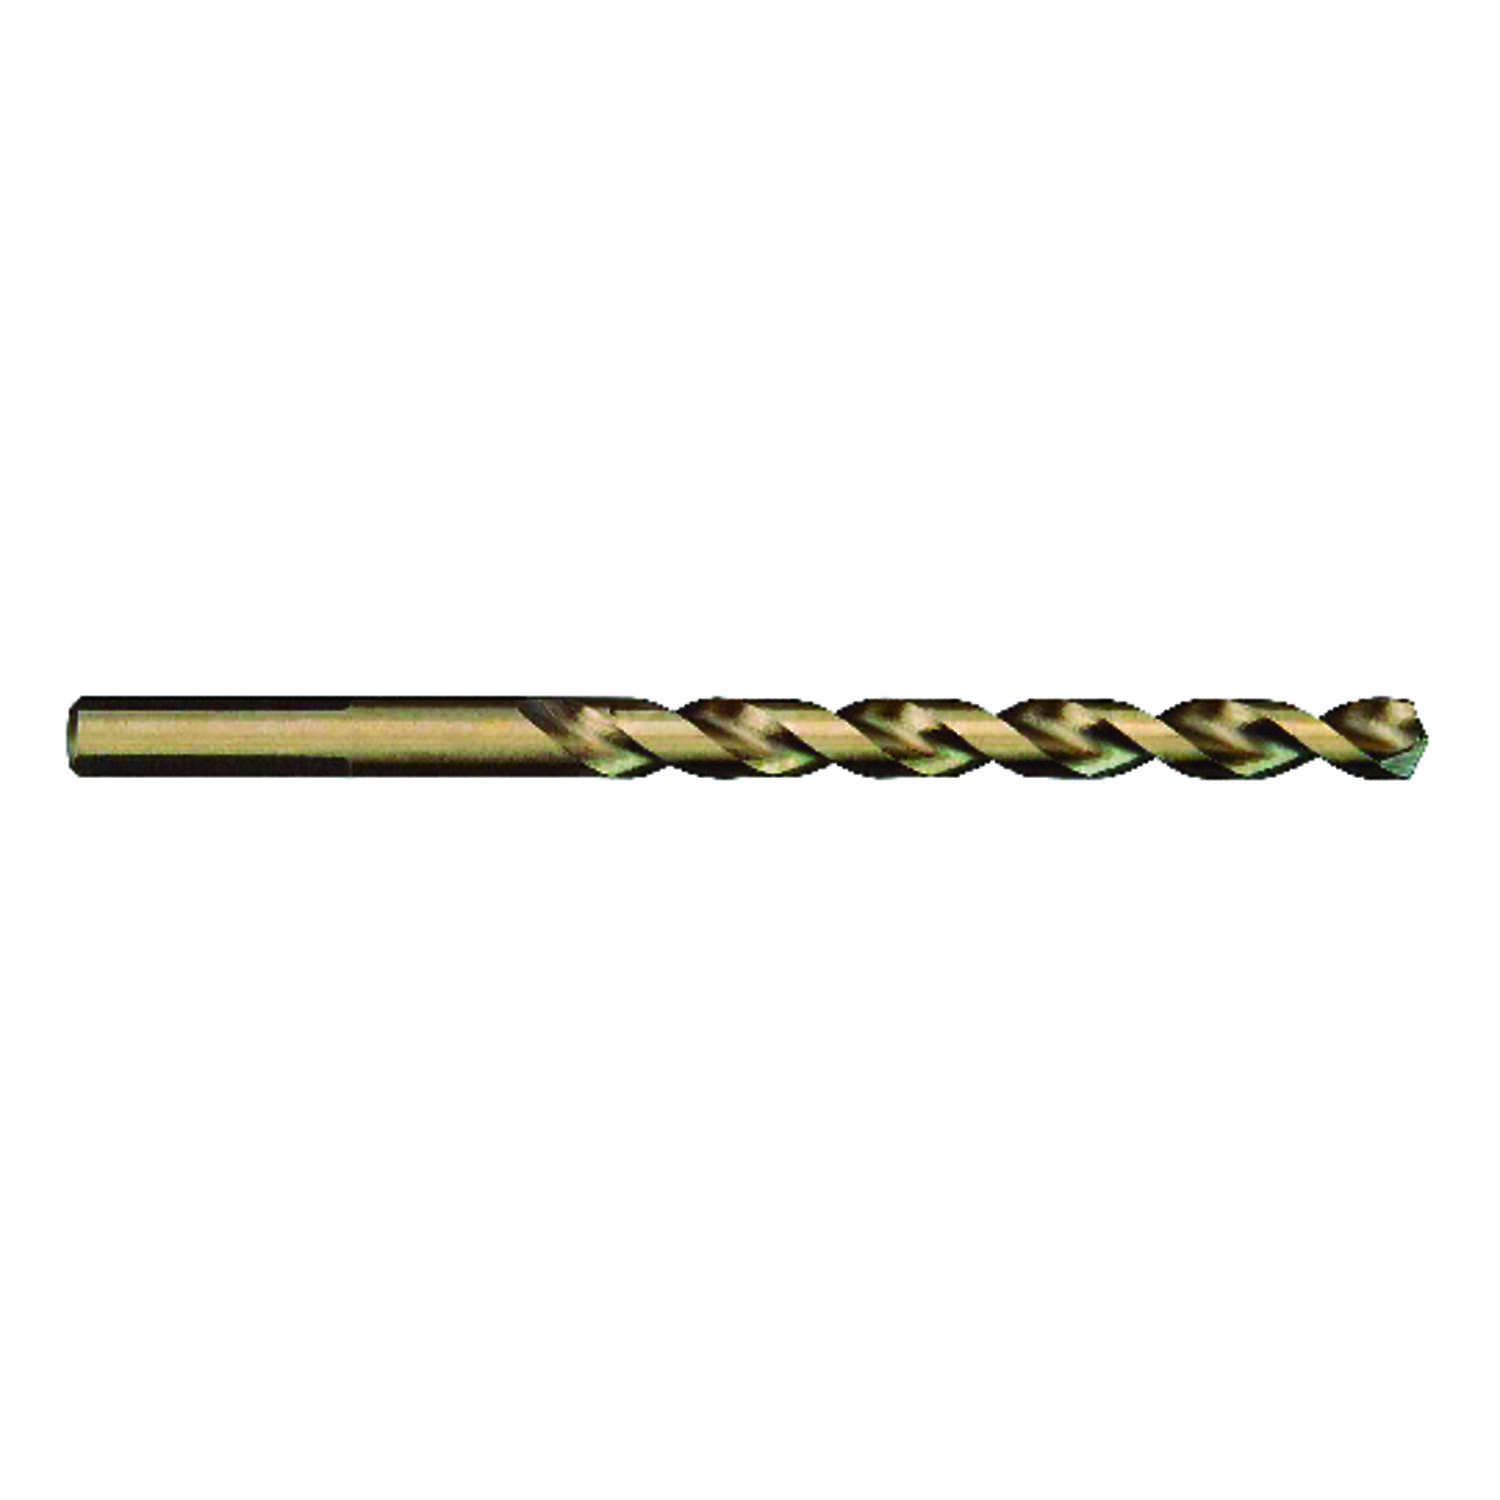 Milwaukee  RED HELIX  3/8 in. Dia. x 5 in. L Cobalt Steel  Drill Bit  3-Flat Shank  THUNDERBOLT  1 p